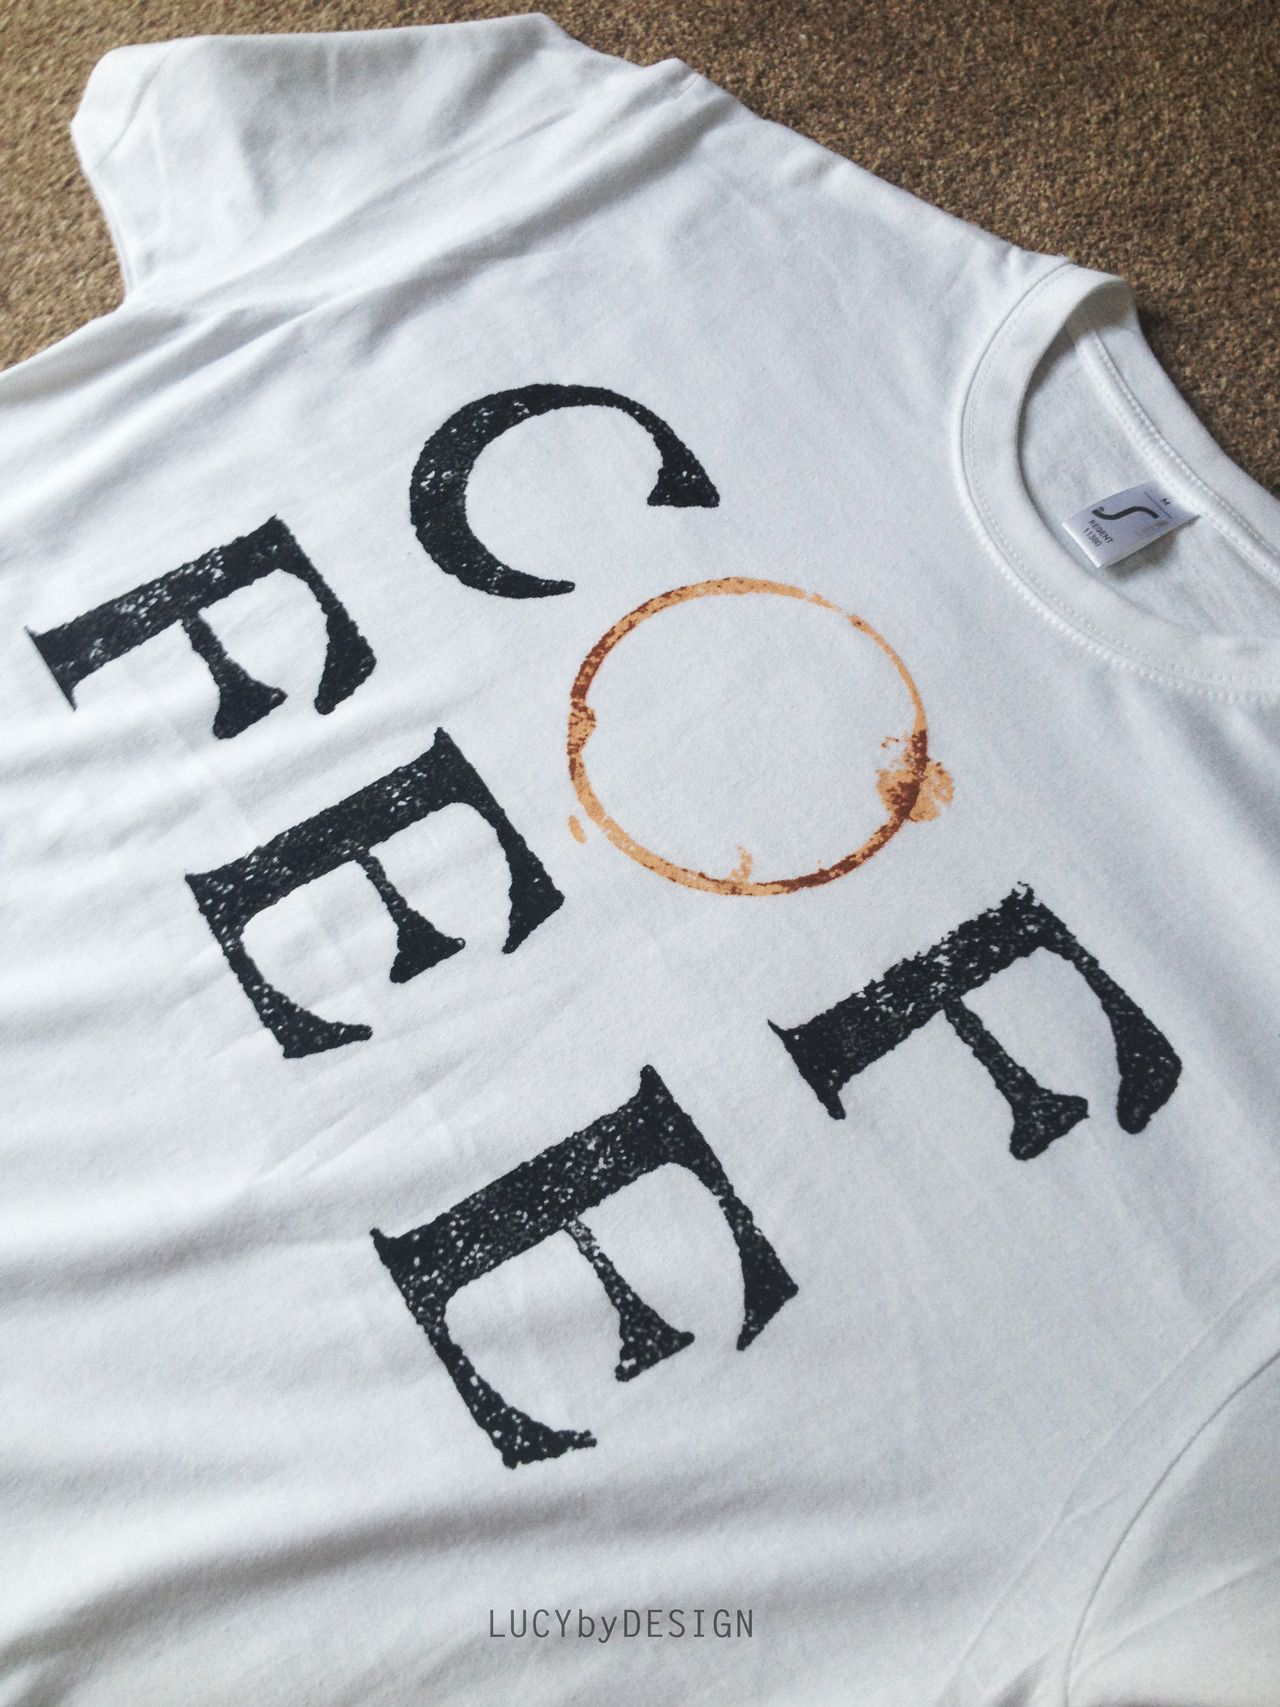 Design your own t shirt columbus ohio - Ive Made These Screen Printed T Shirts With A Coffee Stamp Design I Made